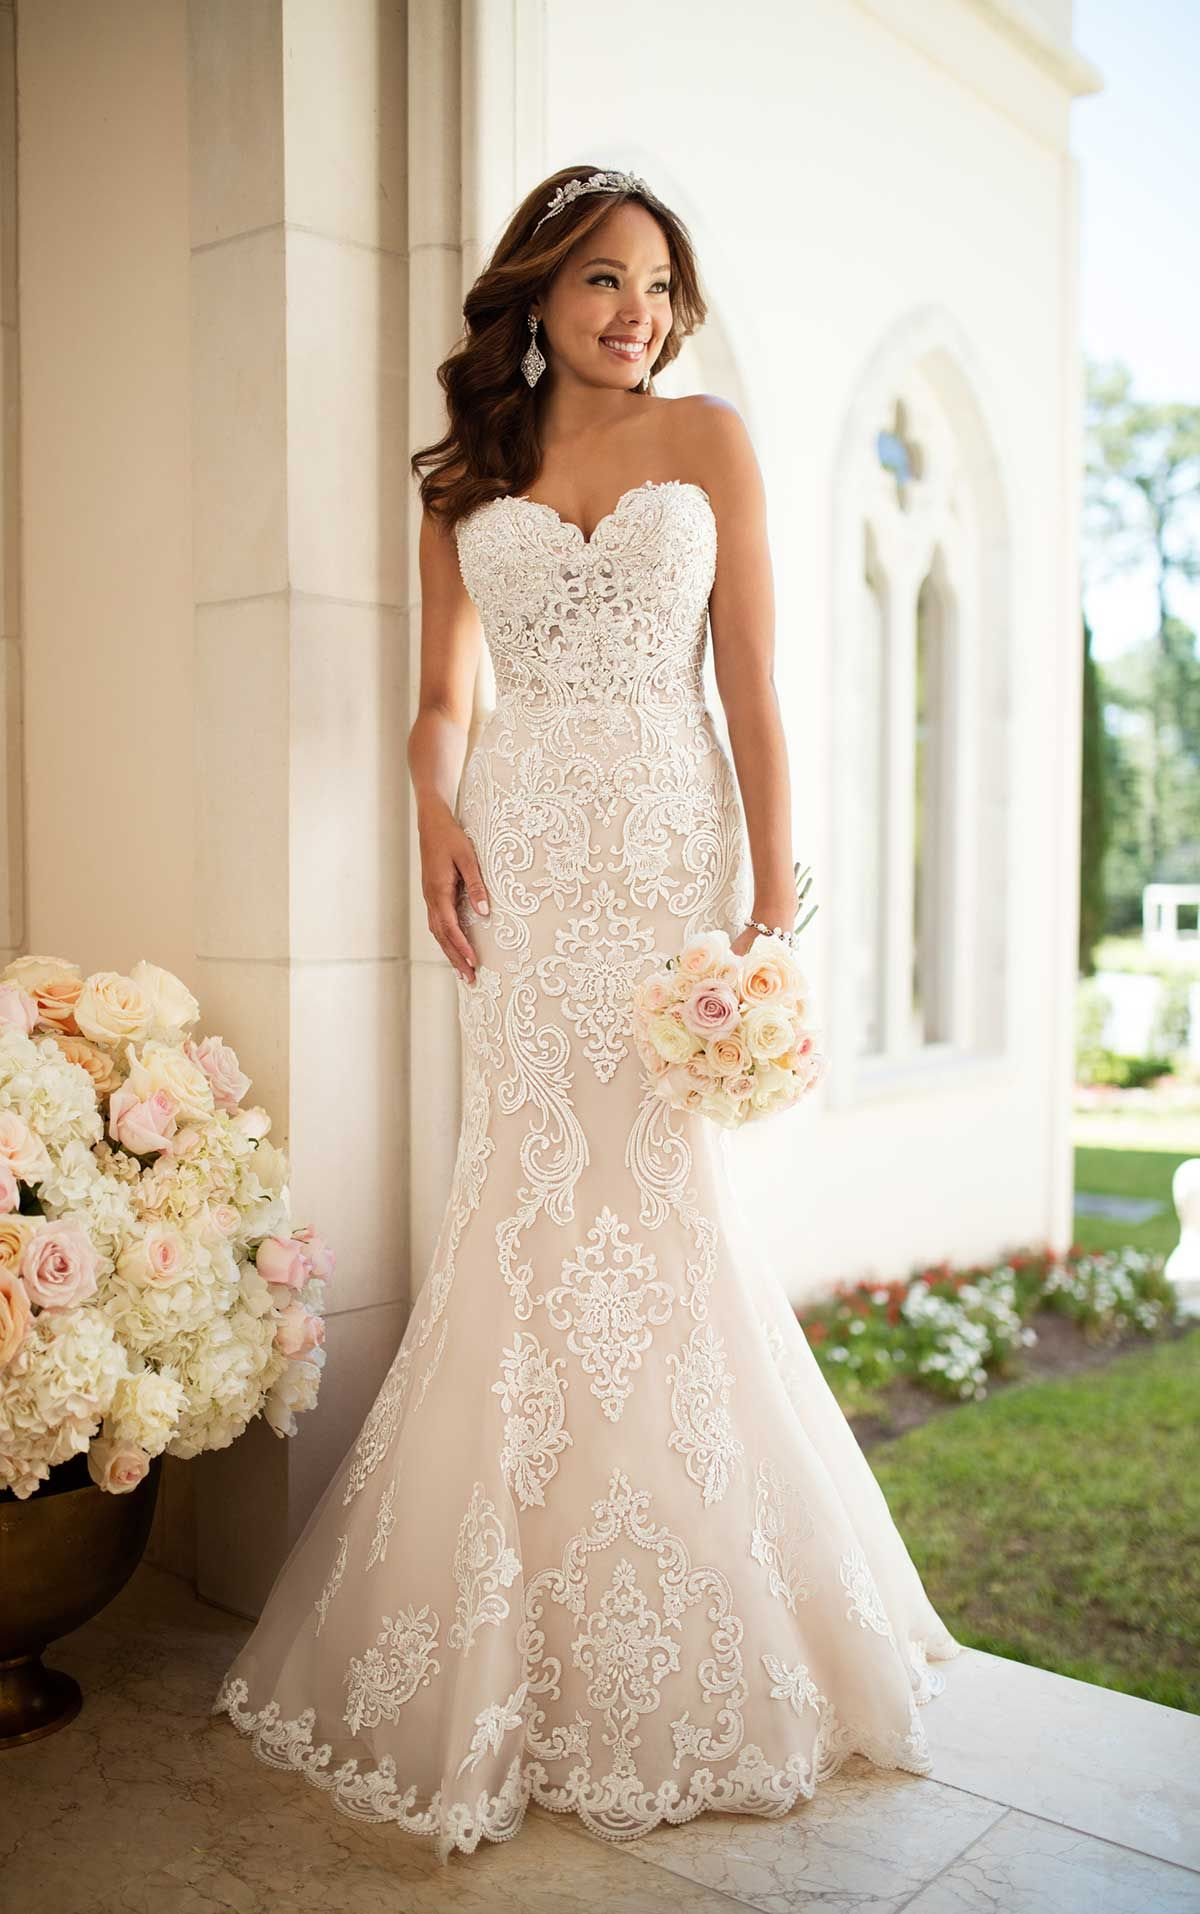 ef401424f6d65 Classic brides will love how elegant and refined they feel in this lace  wedding dress by